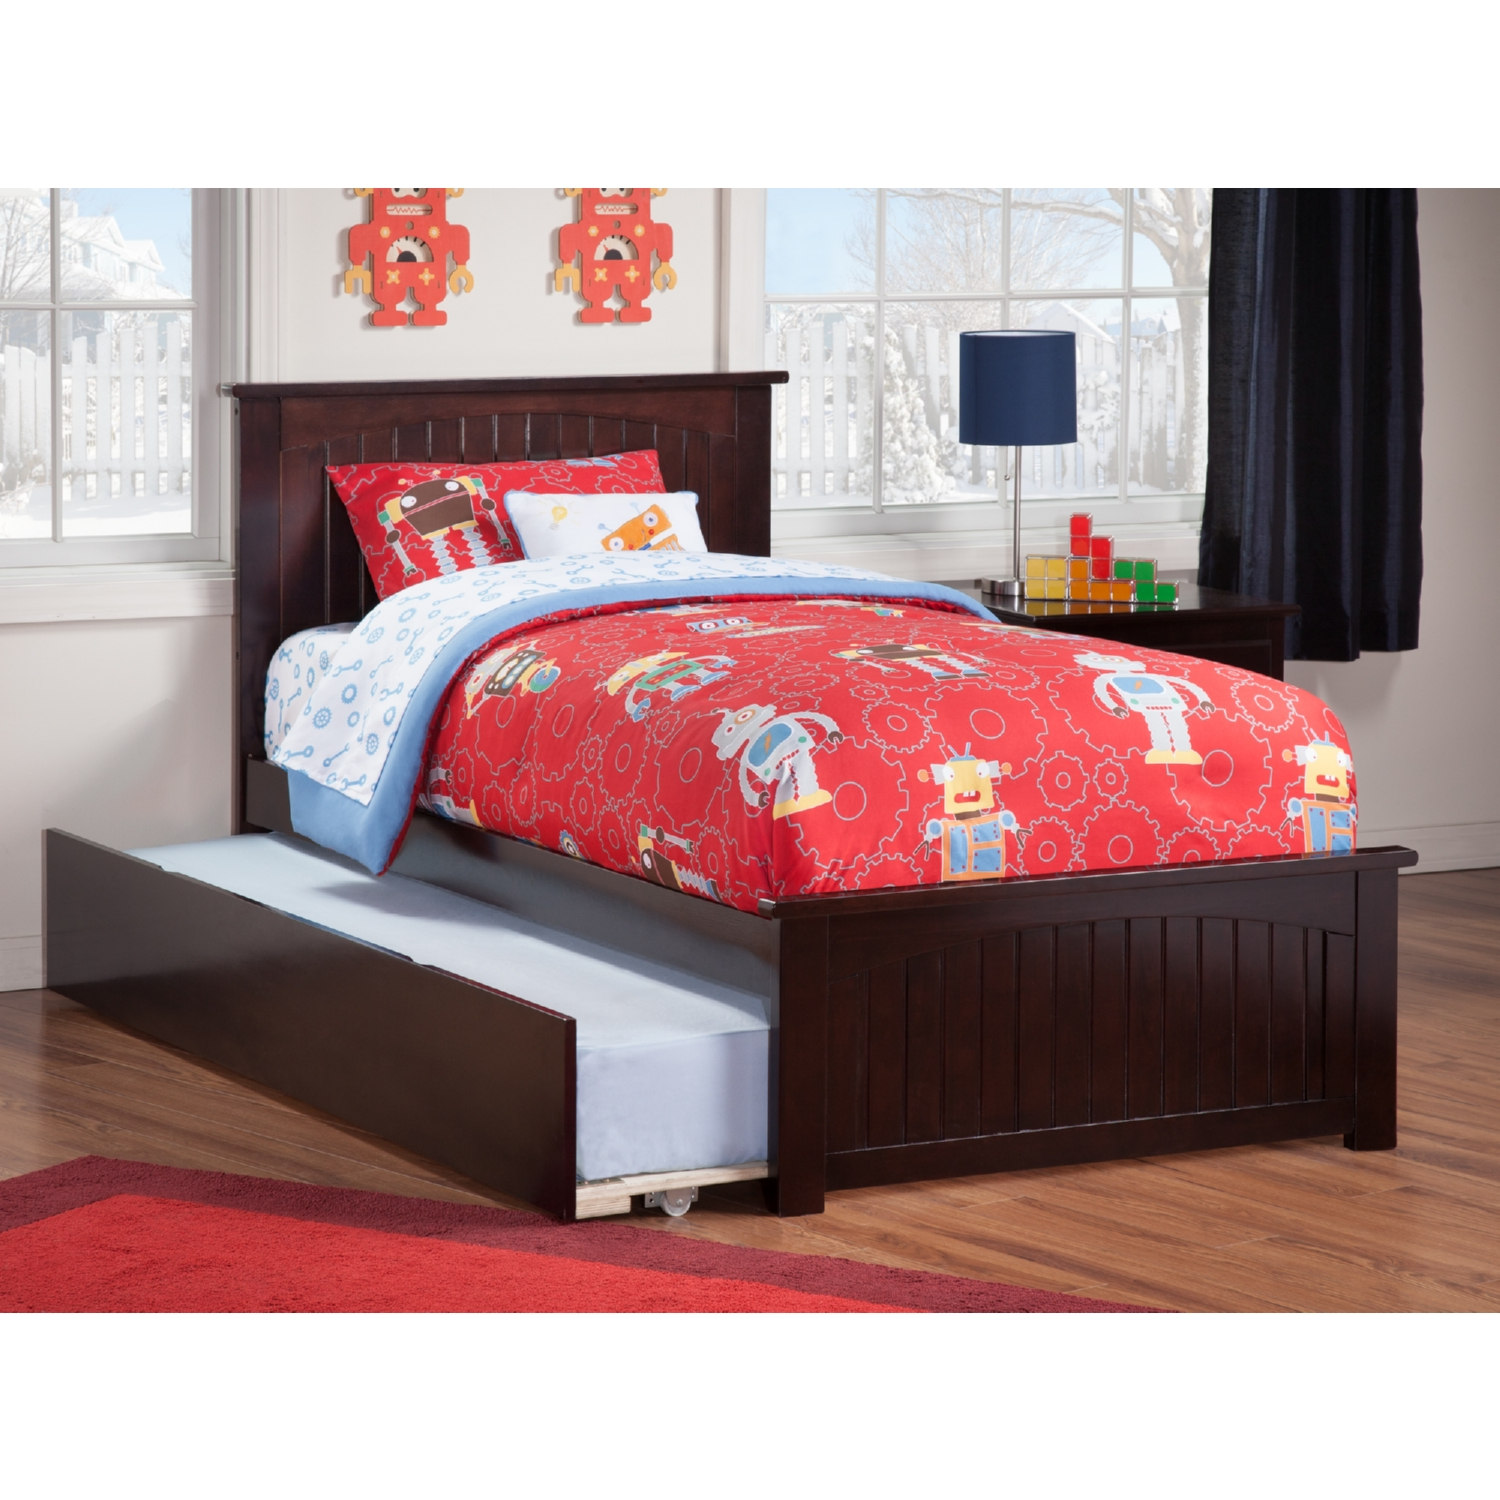 Atlantic furniture ar8226011 nantucket twin bed w for Urban home beds